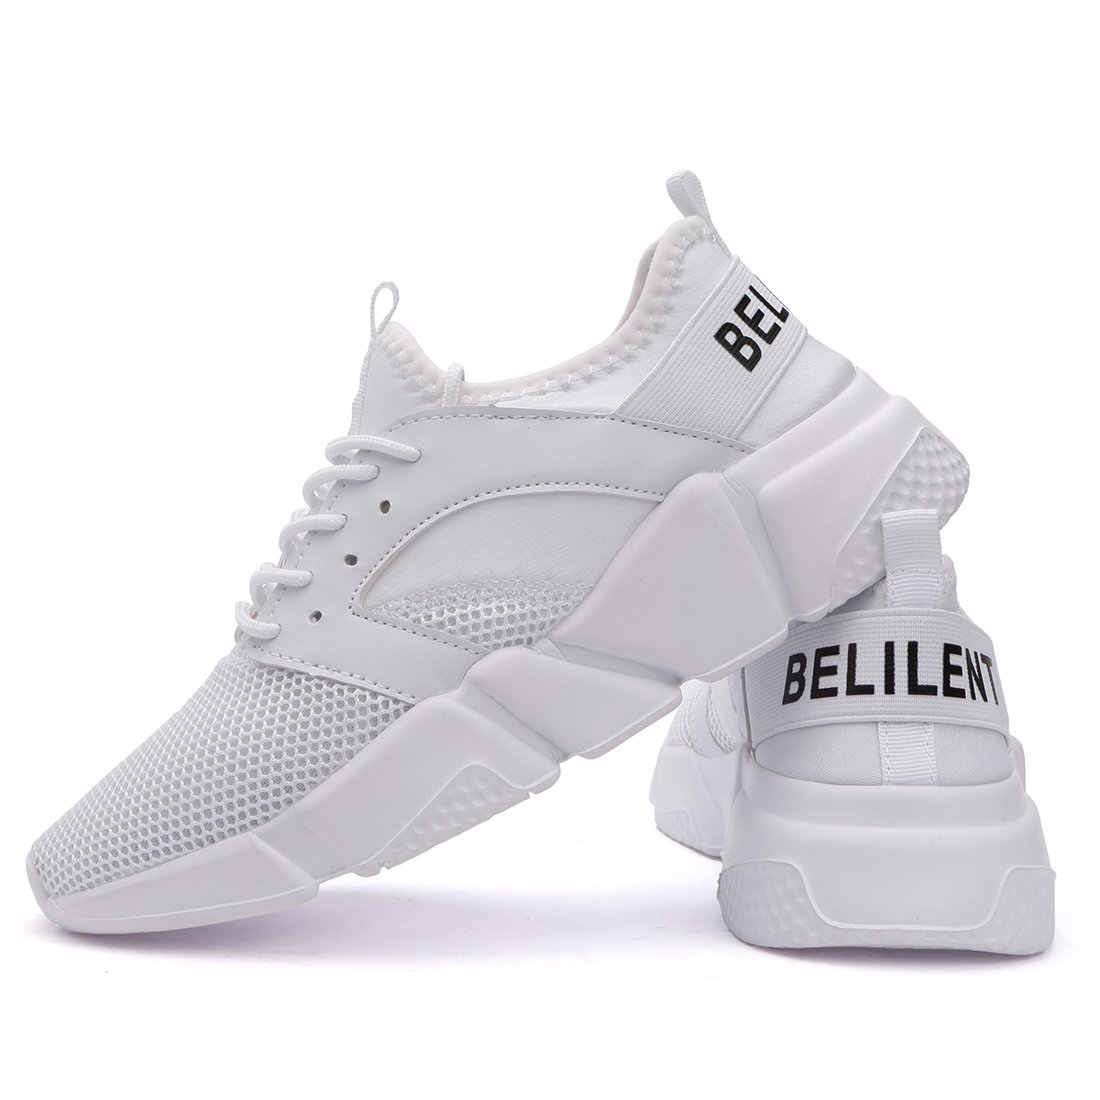 Women's Lightweight Walking Shoes Breathable Mesh Soft Sole for Casual Walk Outdoor Workout Travel Work by Belilent (Image #8)